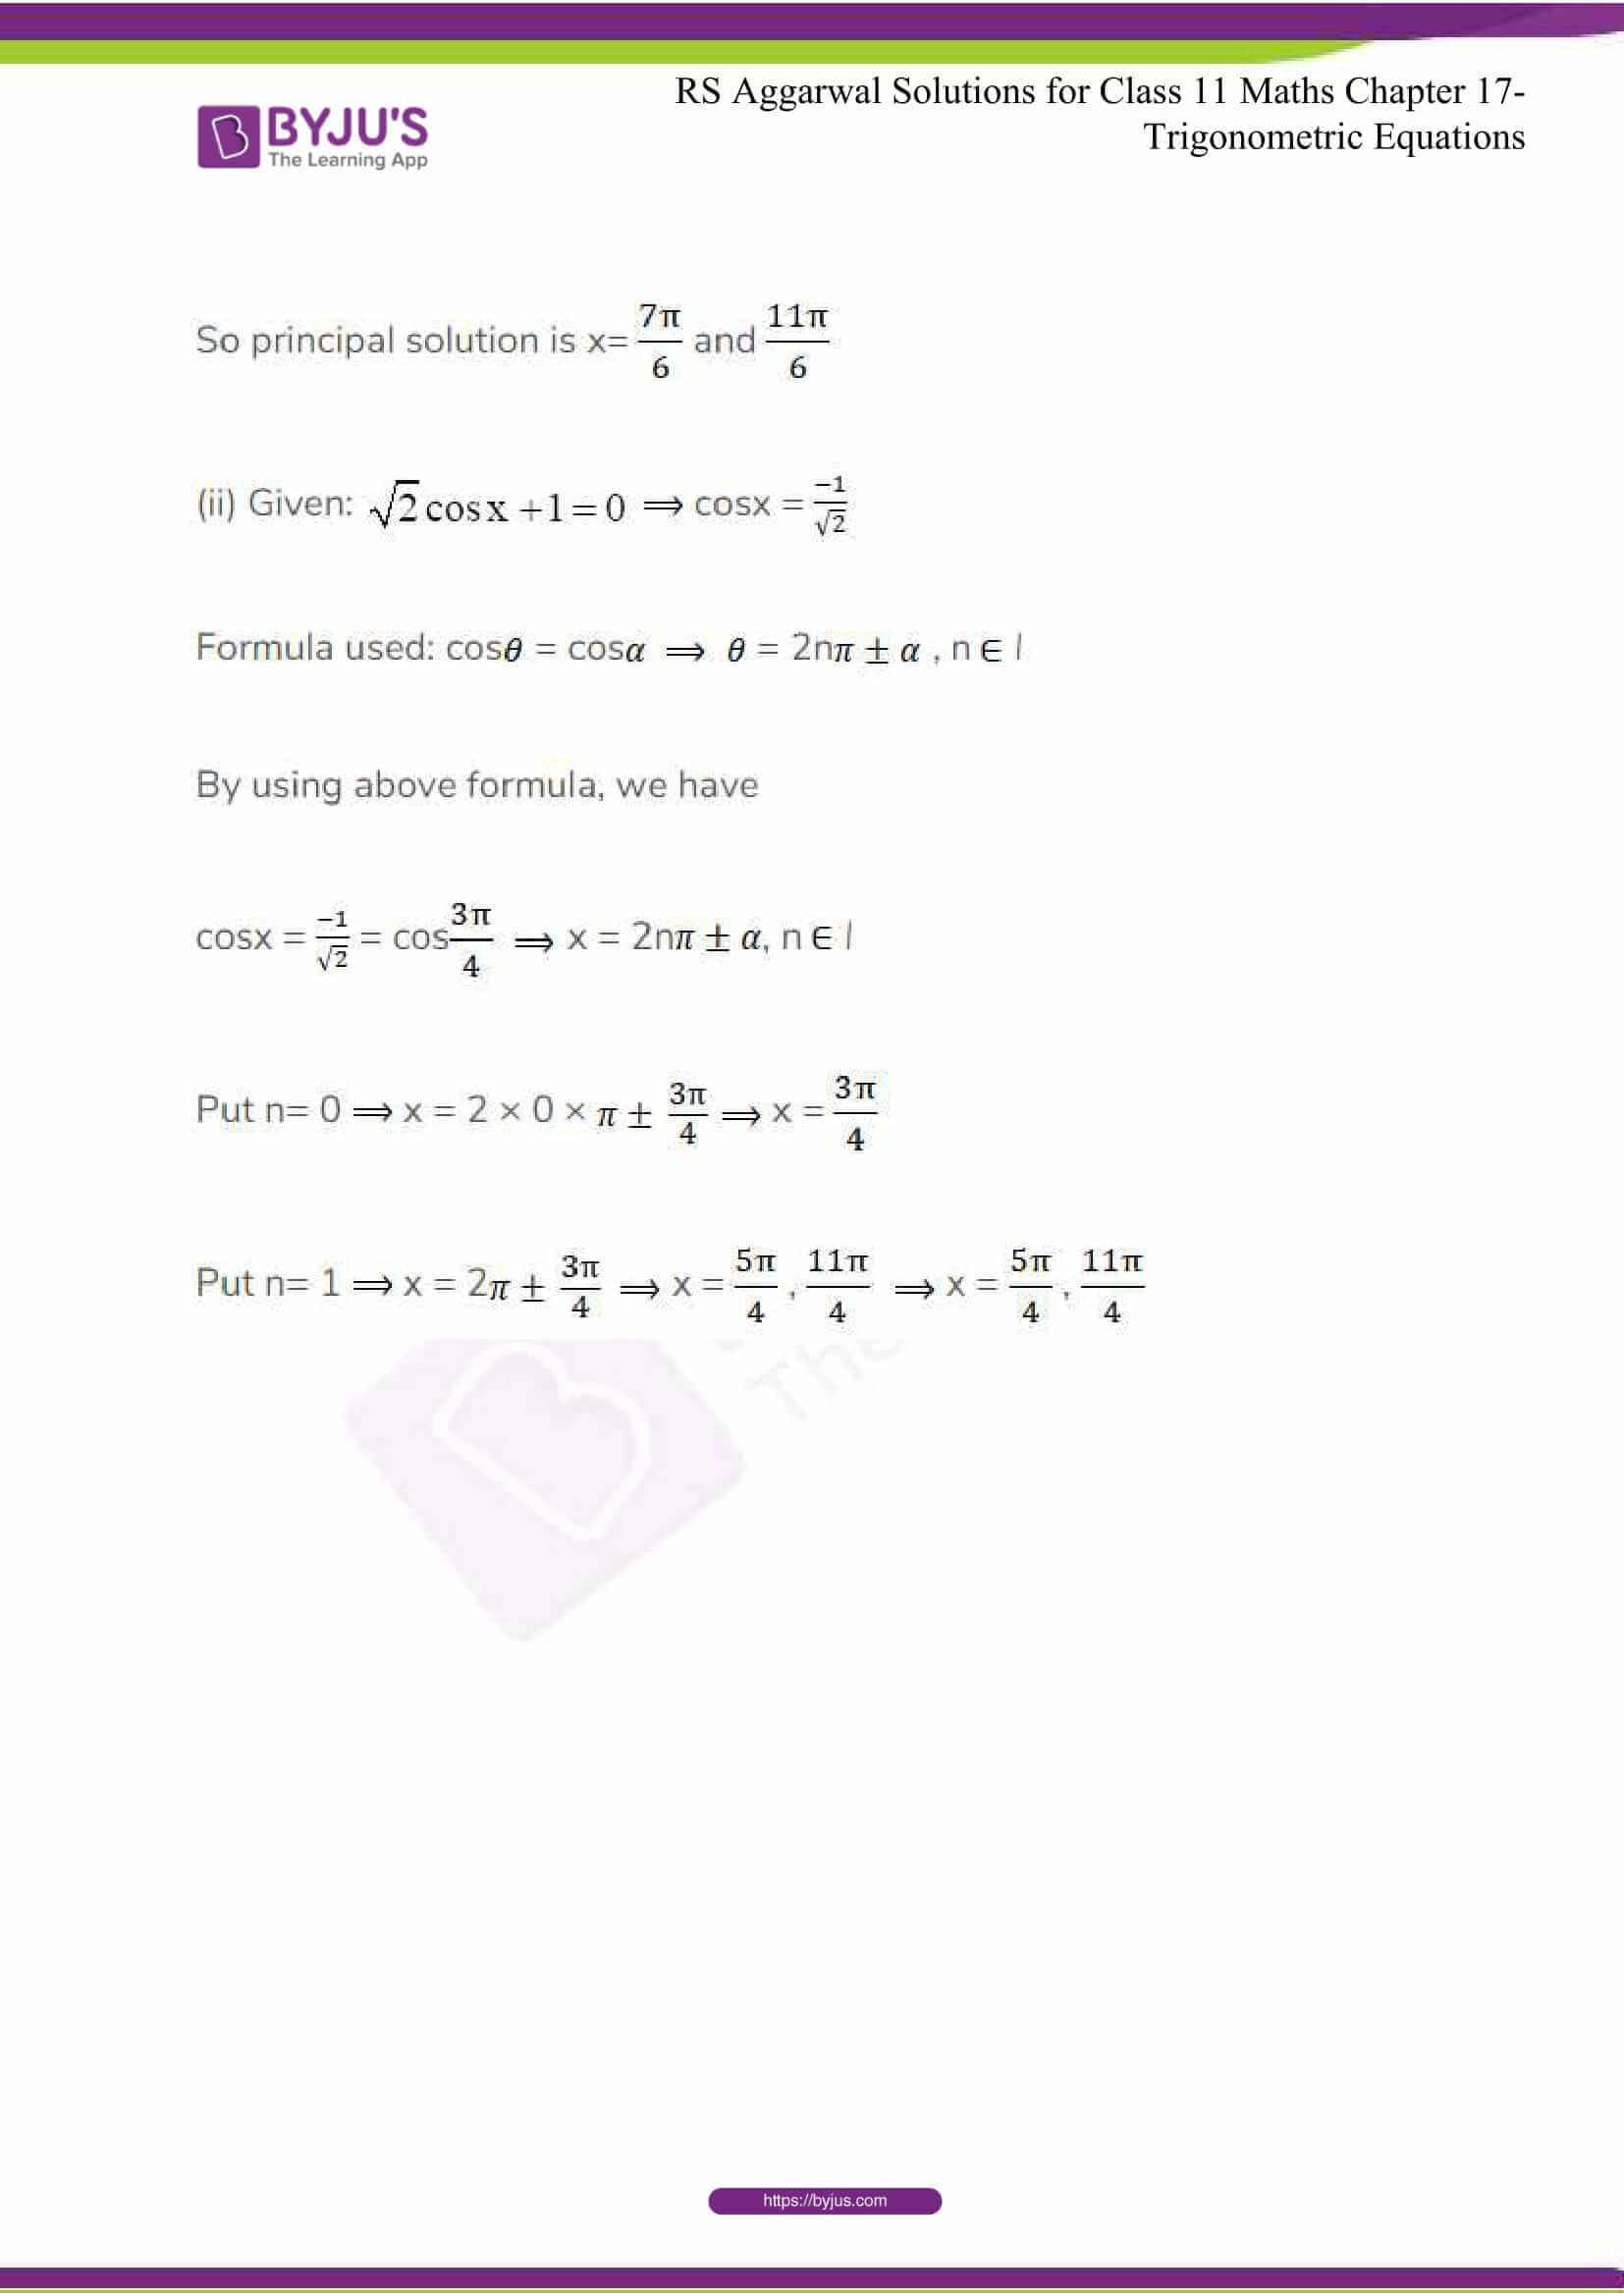 rsaggarwal solutions class 11 maths chapter 17 09